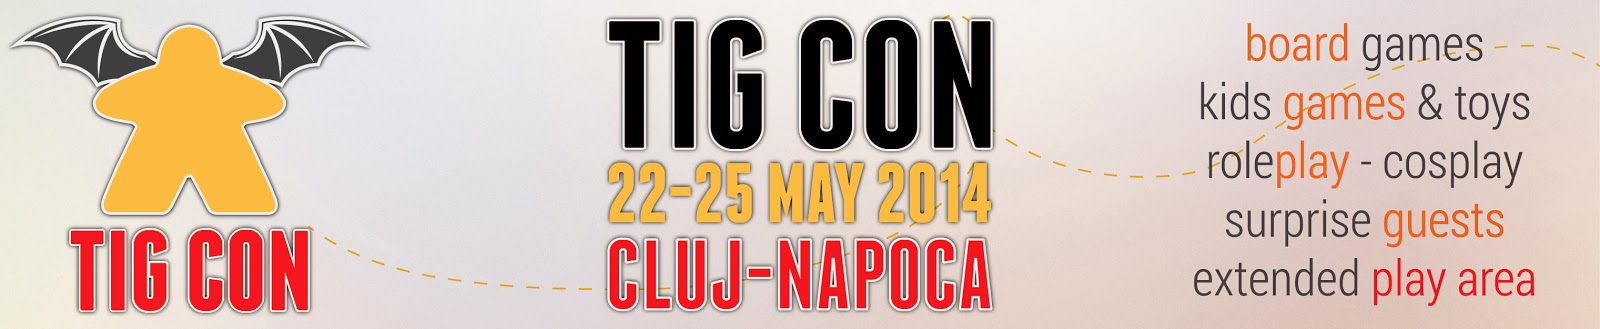 http://www.tig-convention.com/